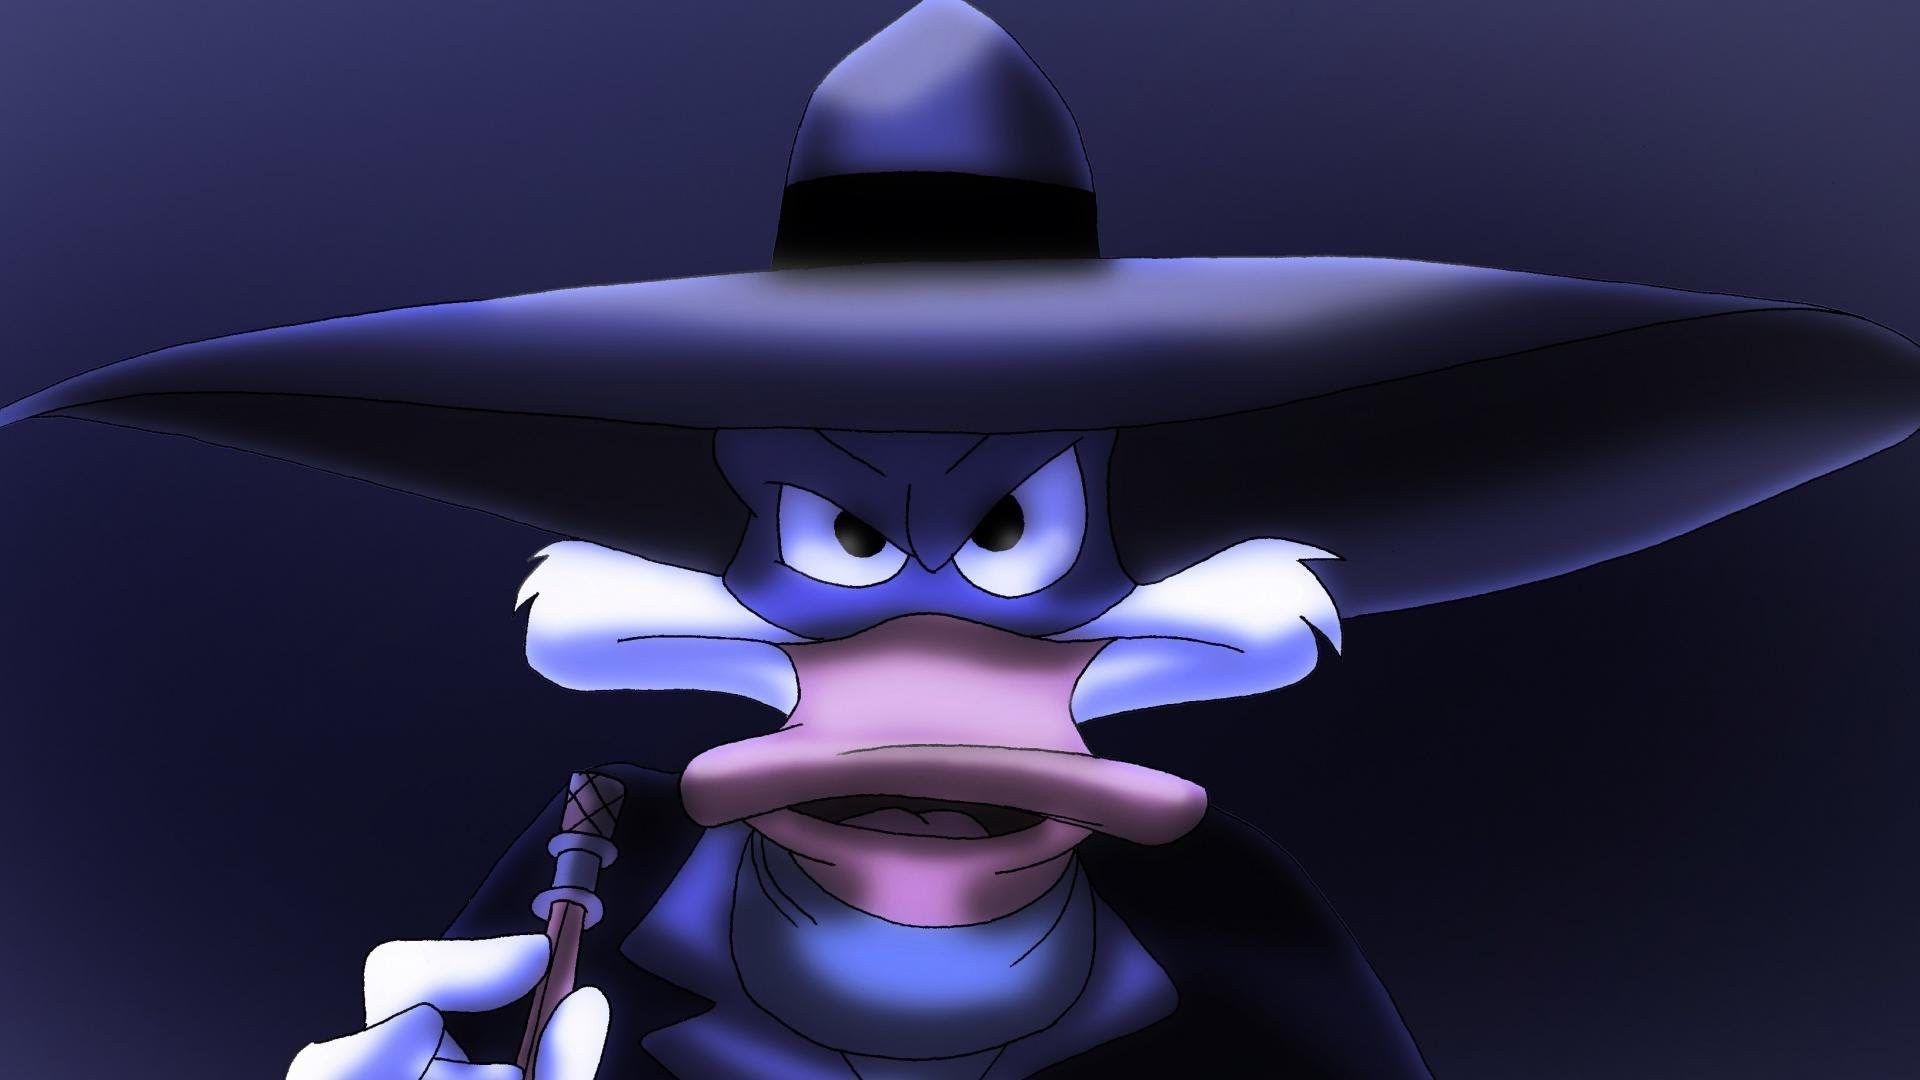 darkwing duck picture: images, walls, pics, Upton Murphy 2016-08-25